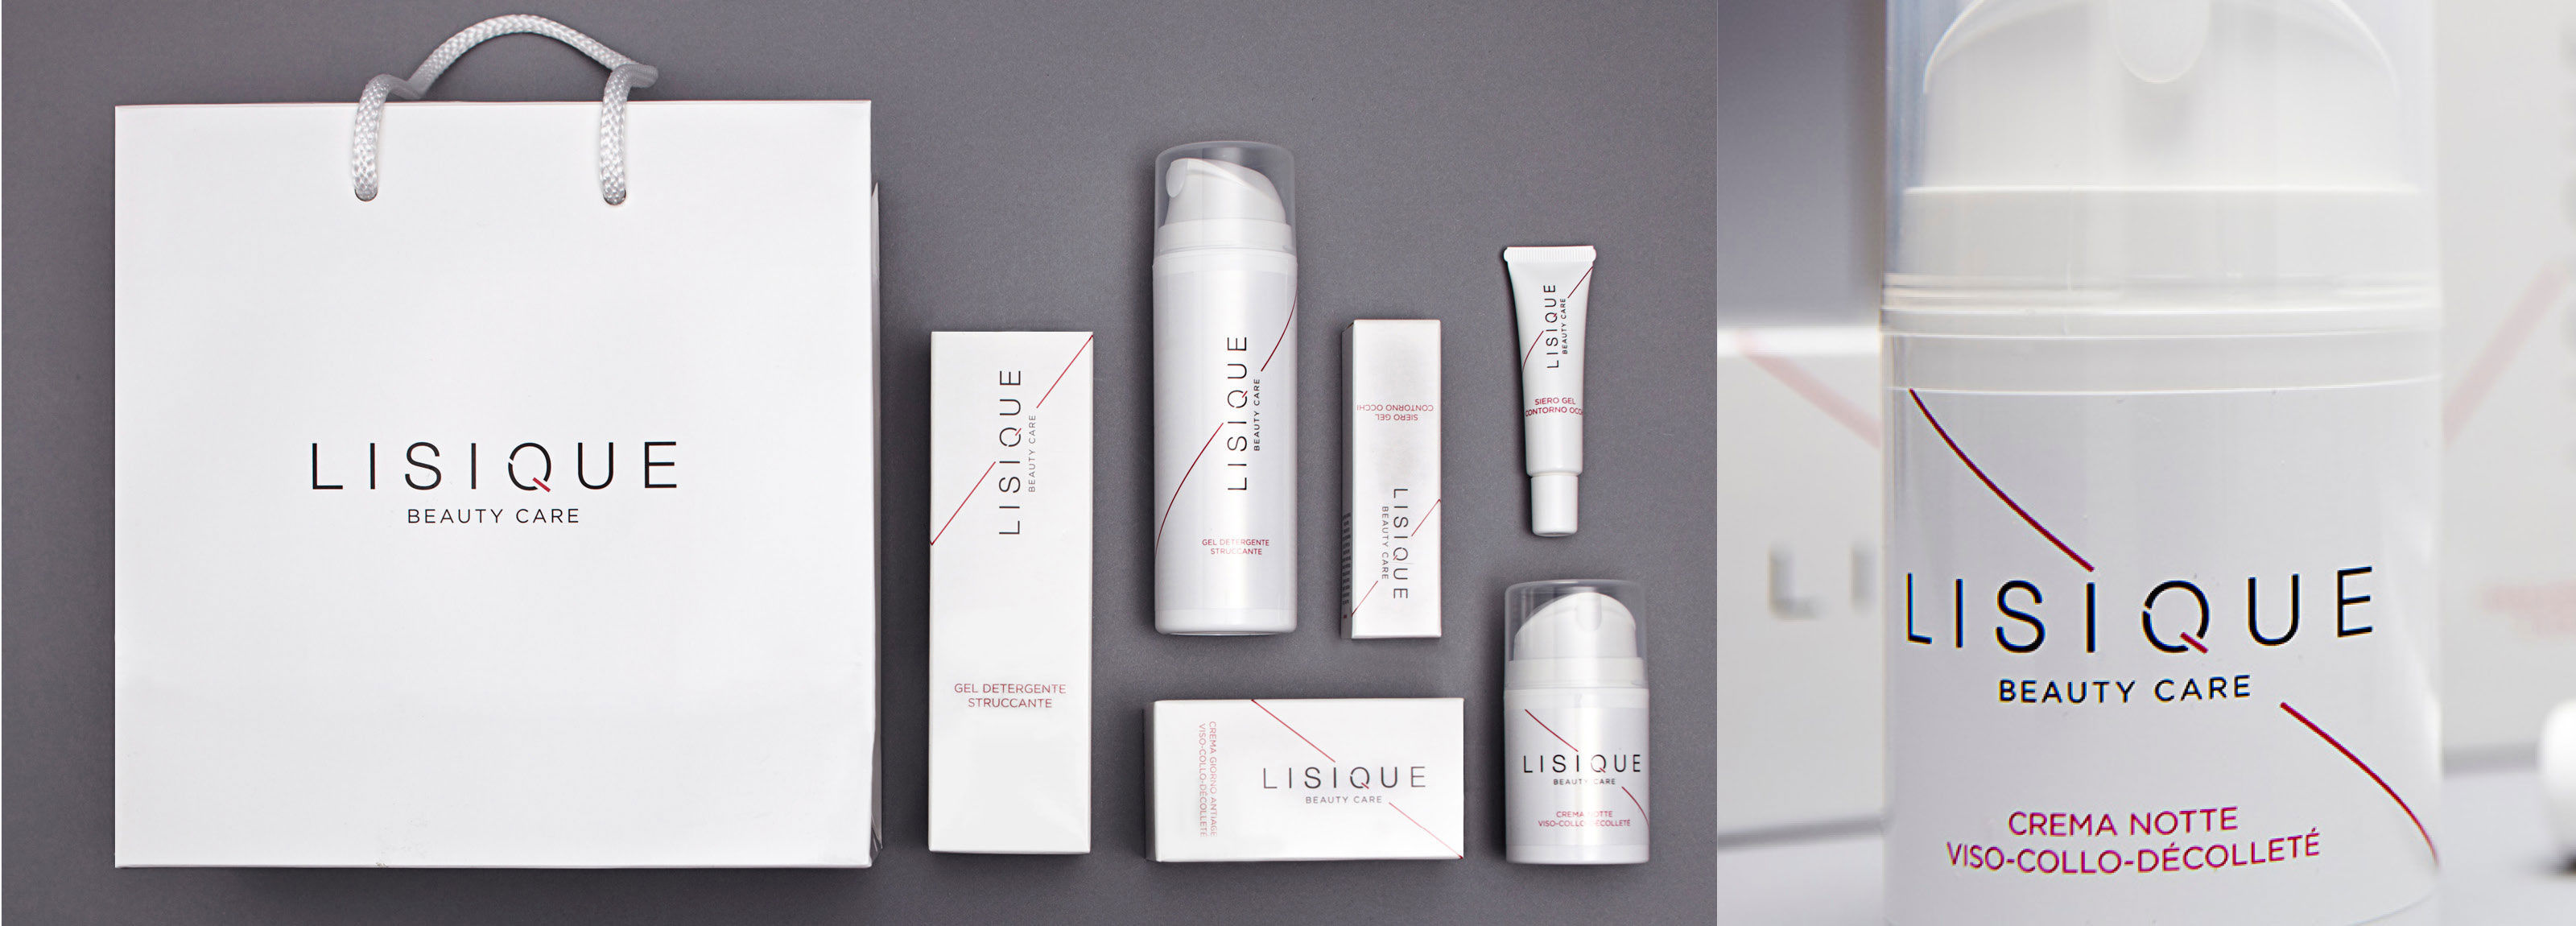 Lisique - Lisique<br>Skin care products